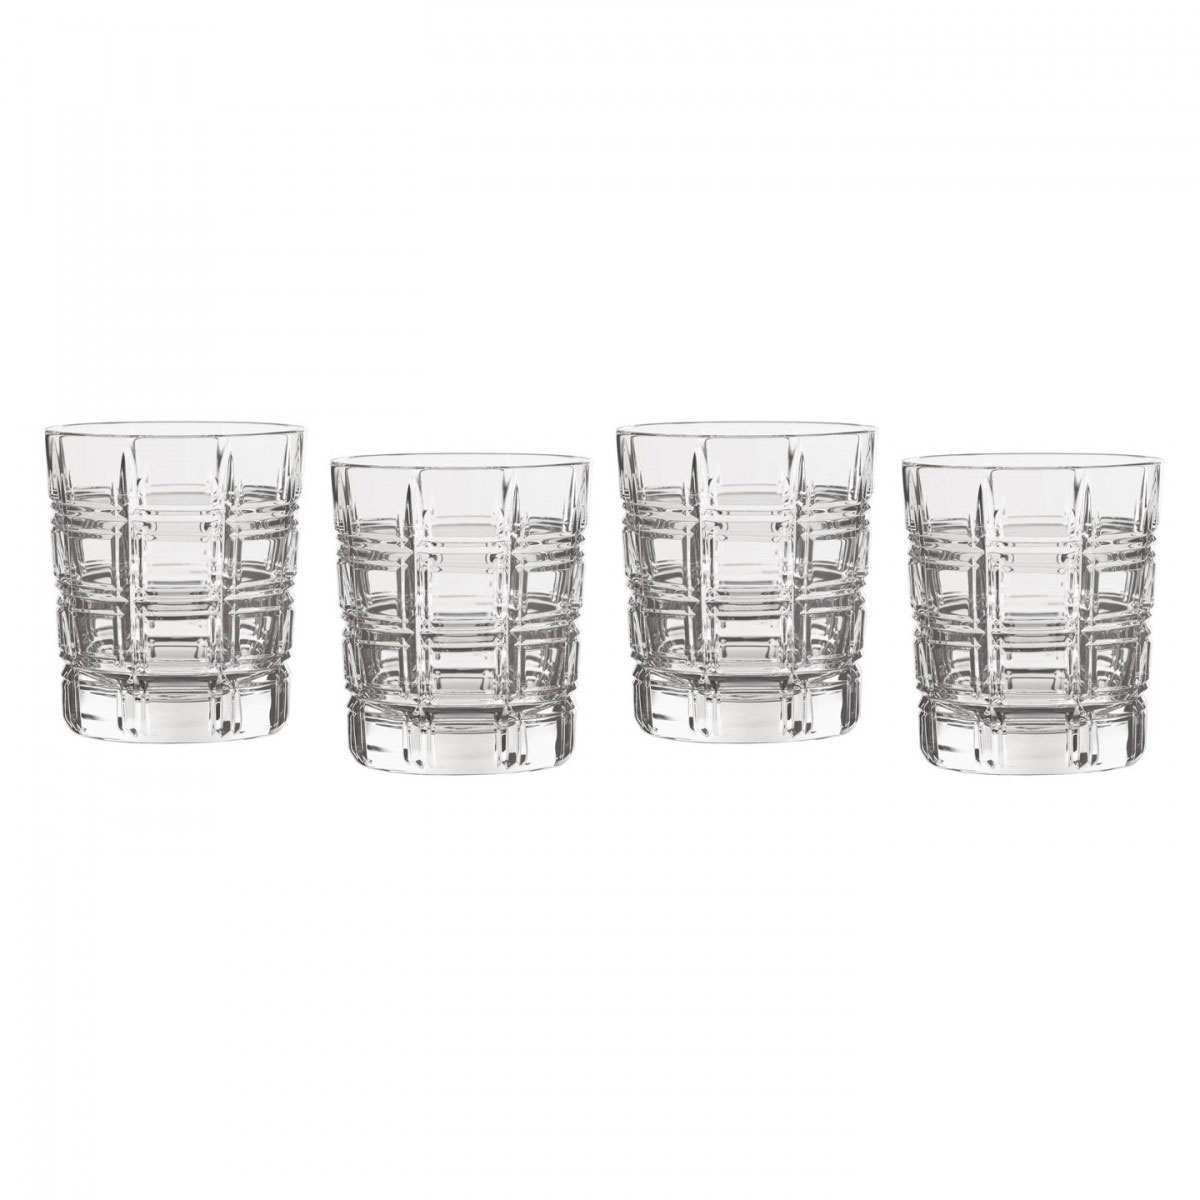 Marquis by Waterford Crystal, Crosby Crystal DOF Tumbler, Set of Four